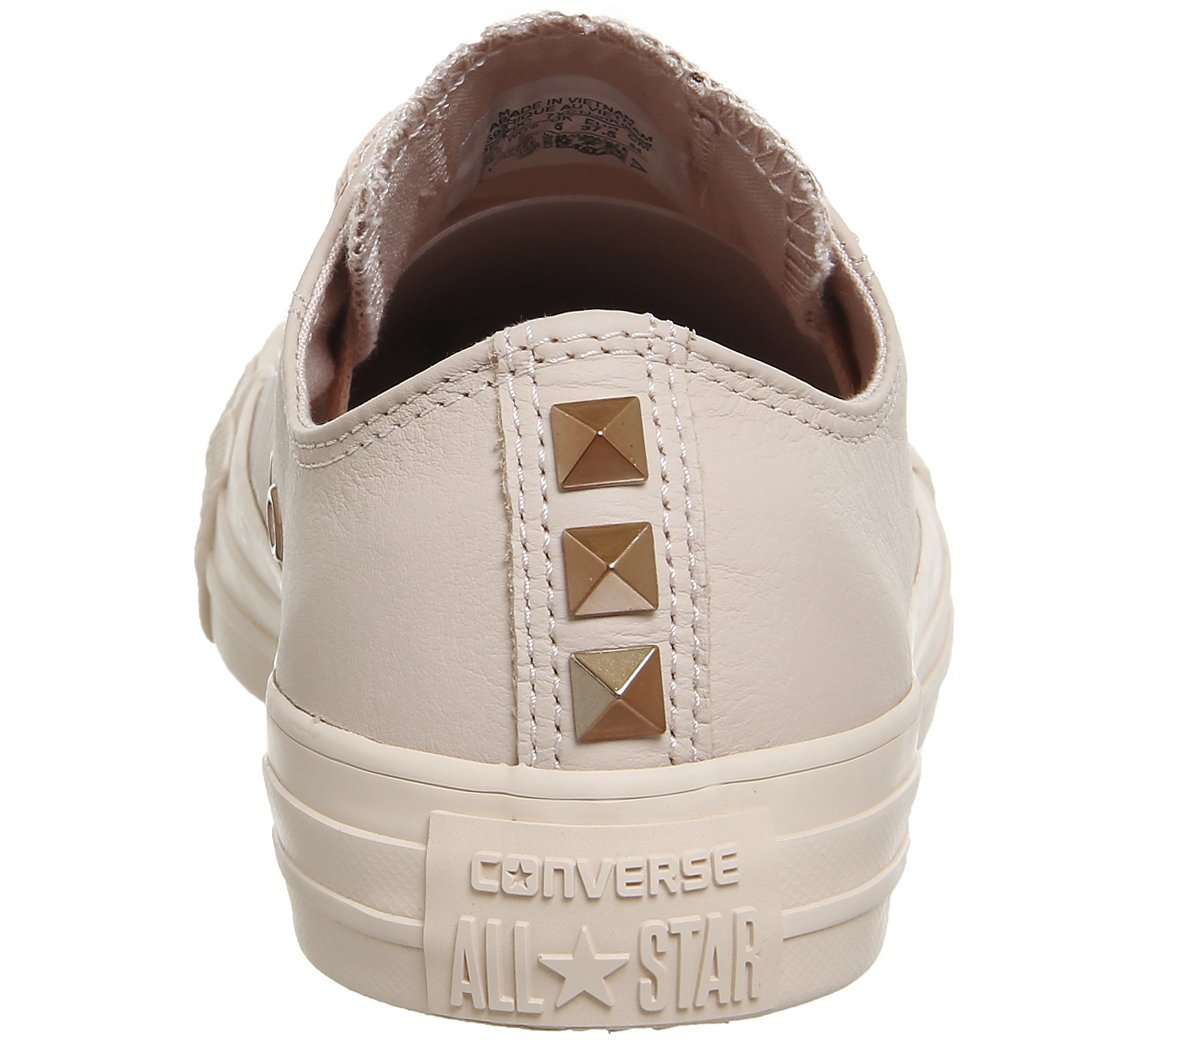 Converse Chuck Taylor Unisex All Star Mono Ox, Unisex Taylor - Erwachsene Sneaker Dust Pink Stud Exclusive 1e67f8